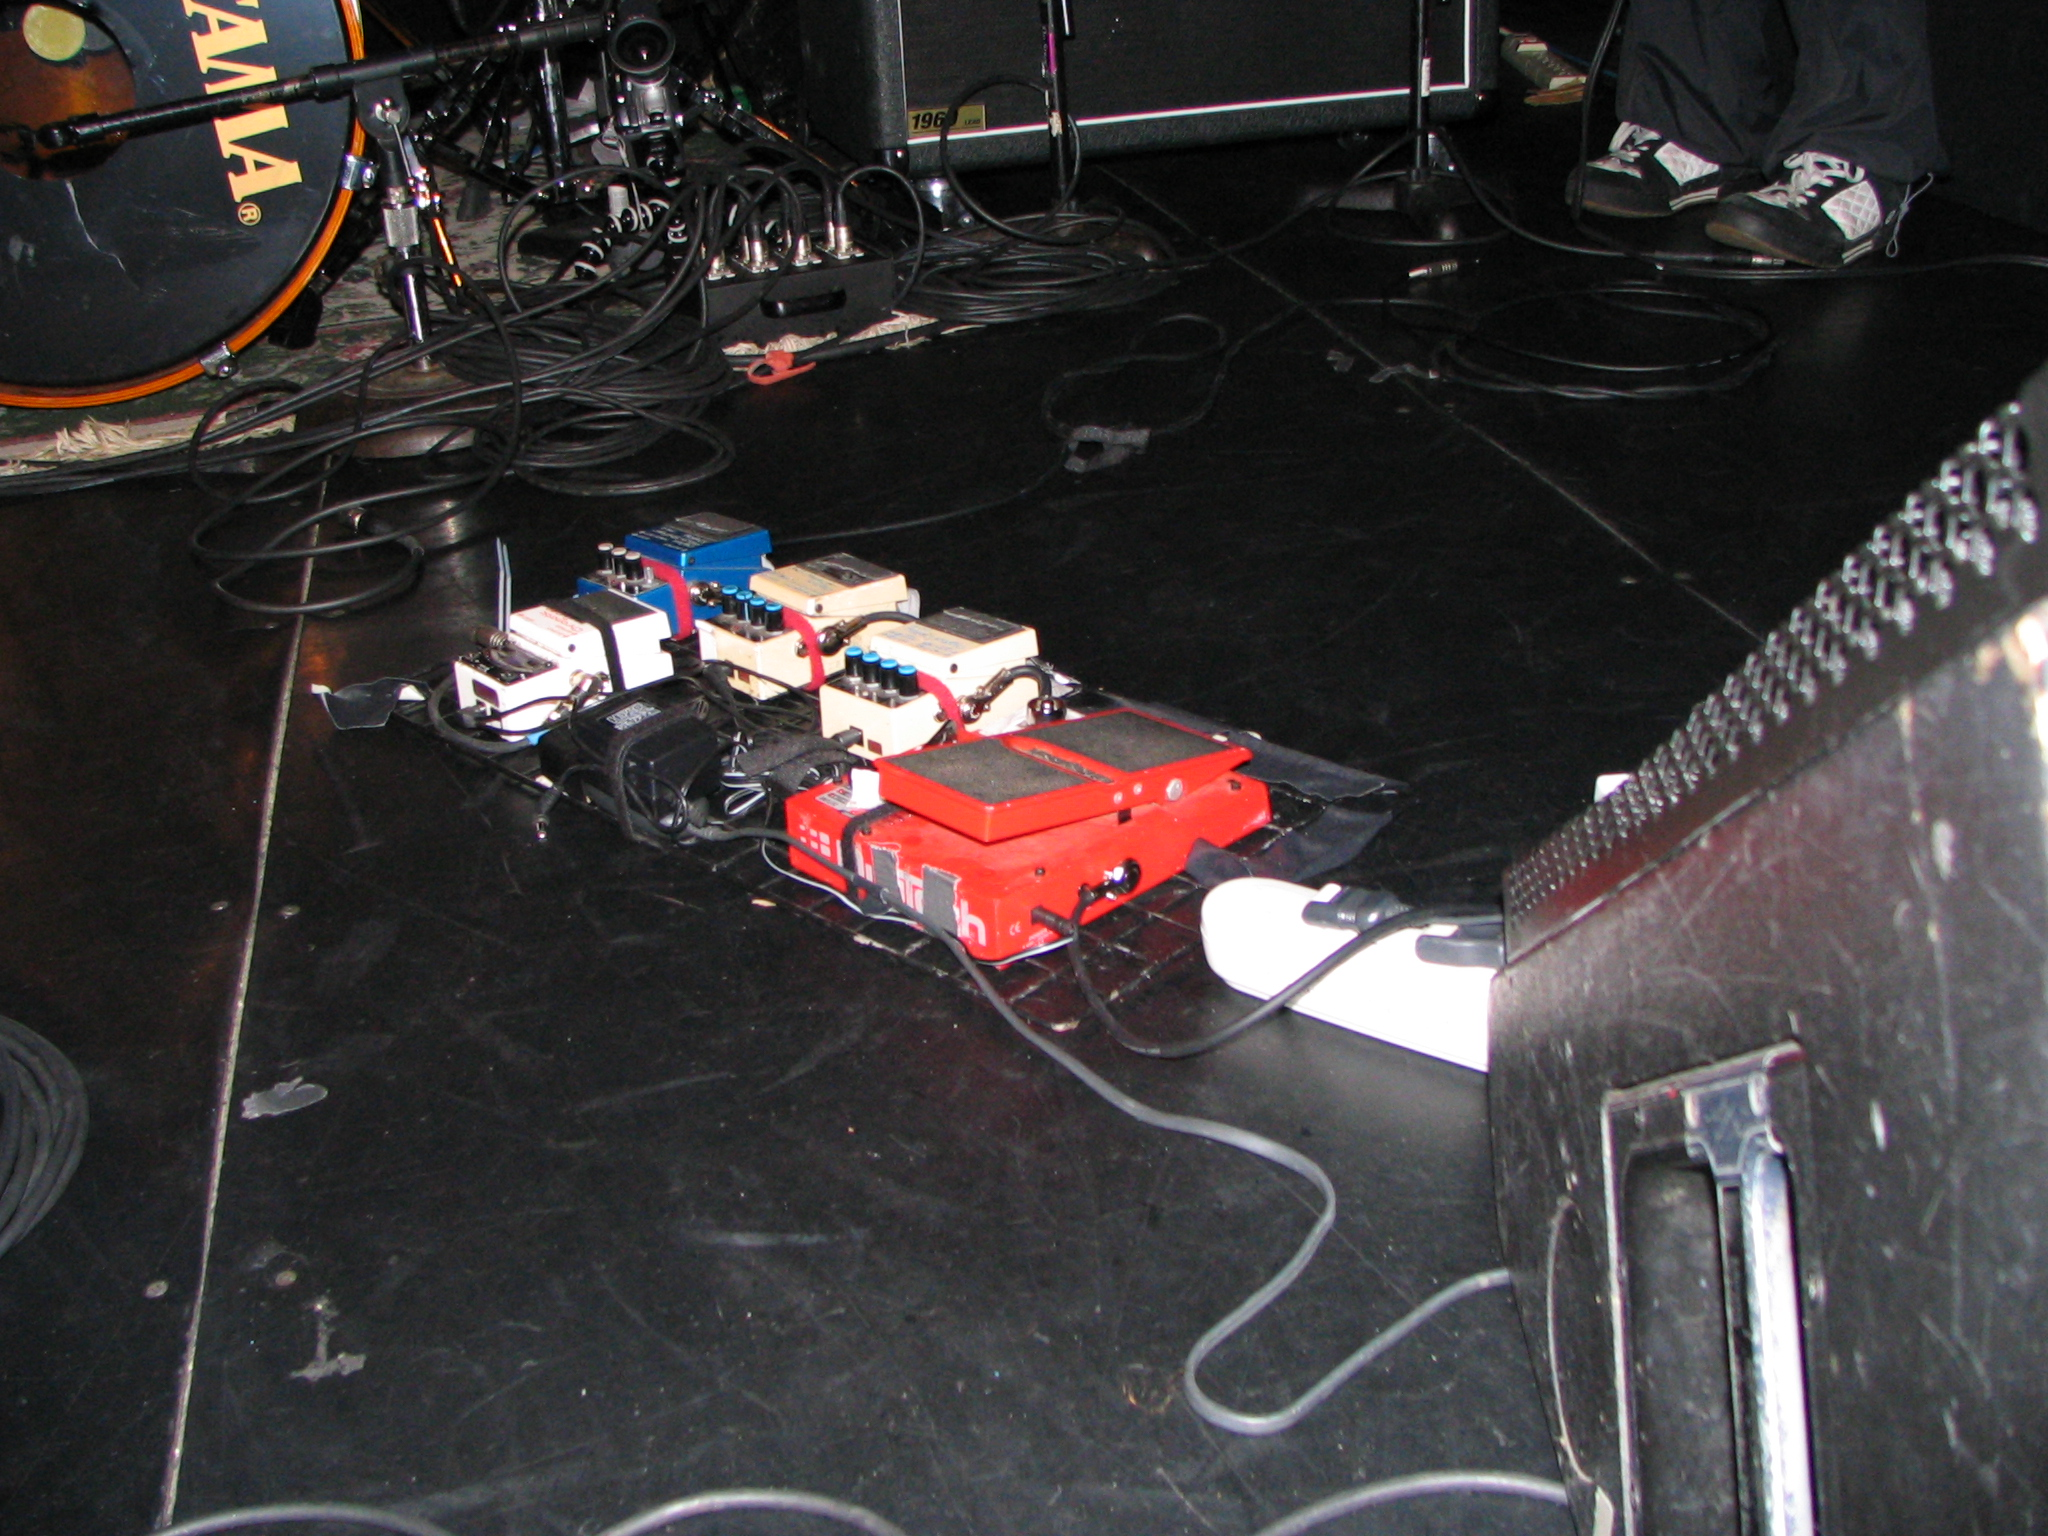 FileSome Effects Pedals Used By Ichirou Agata Of Melt BananaJPG